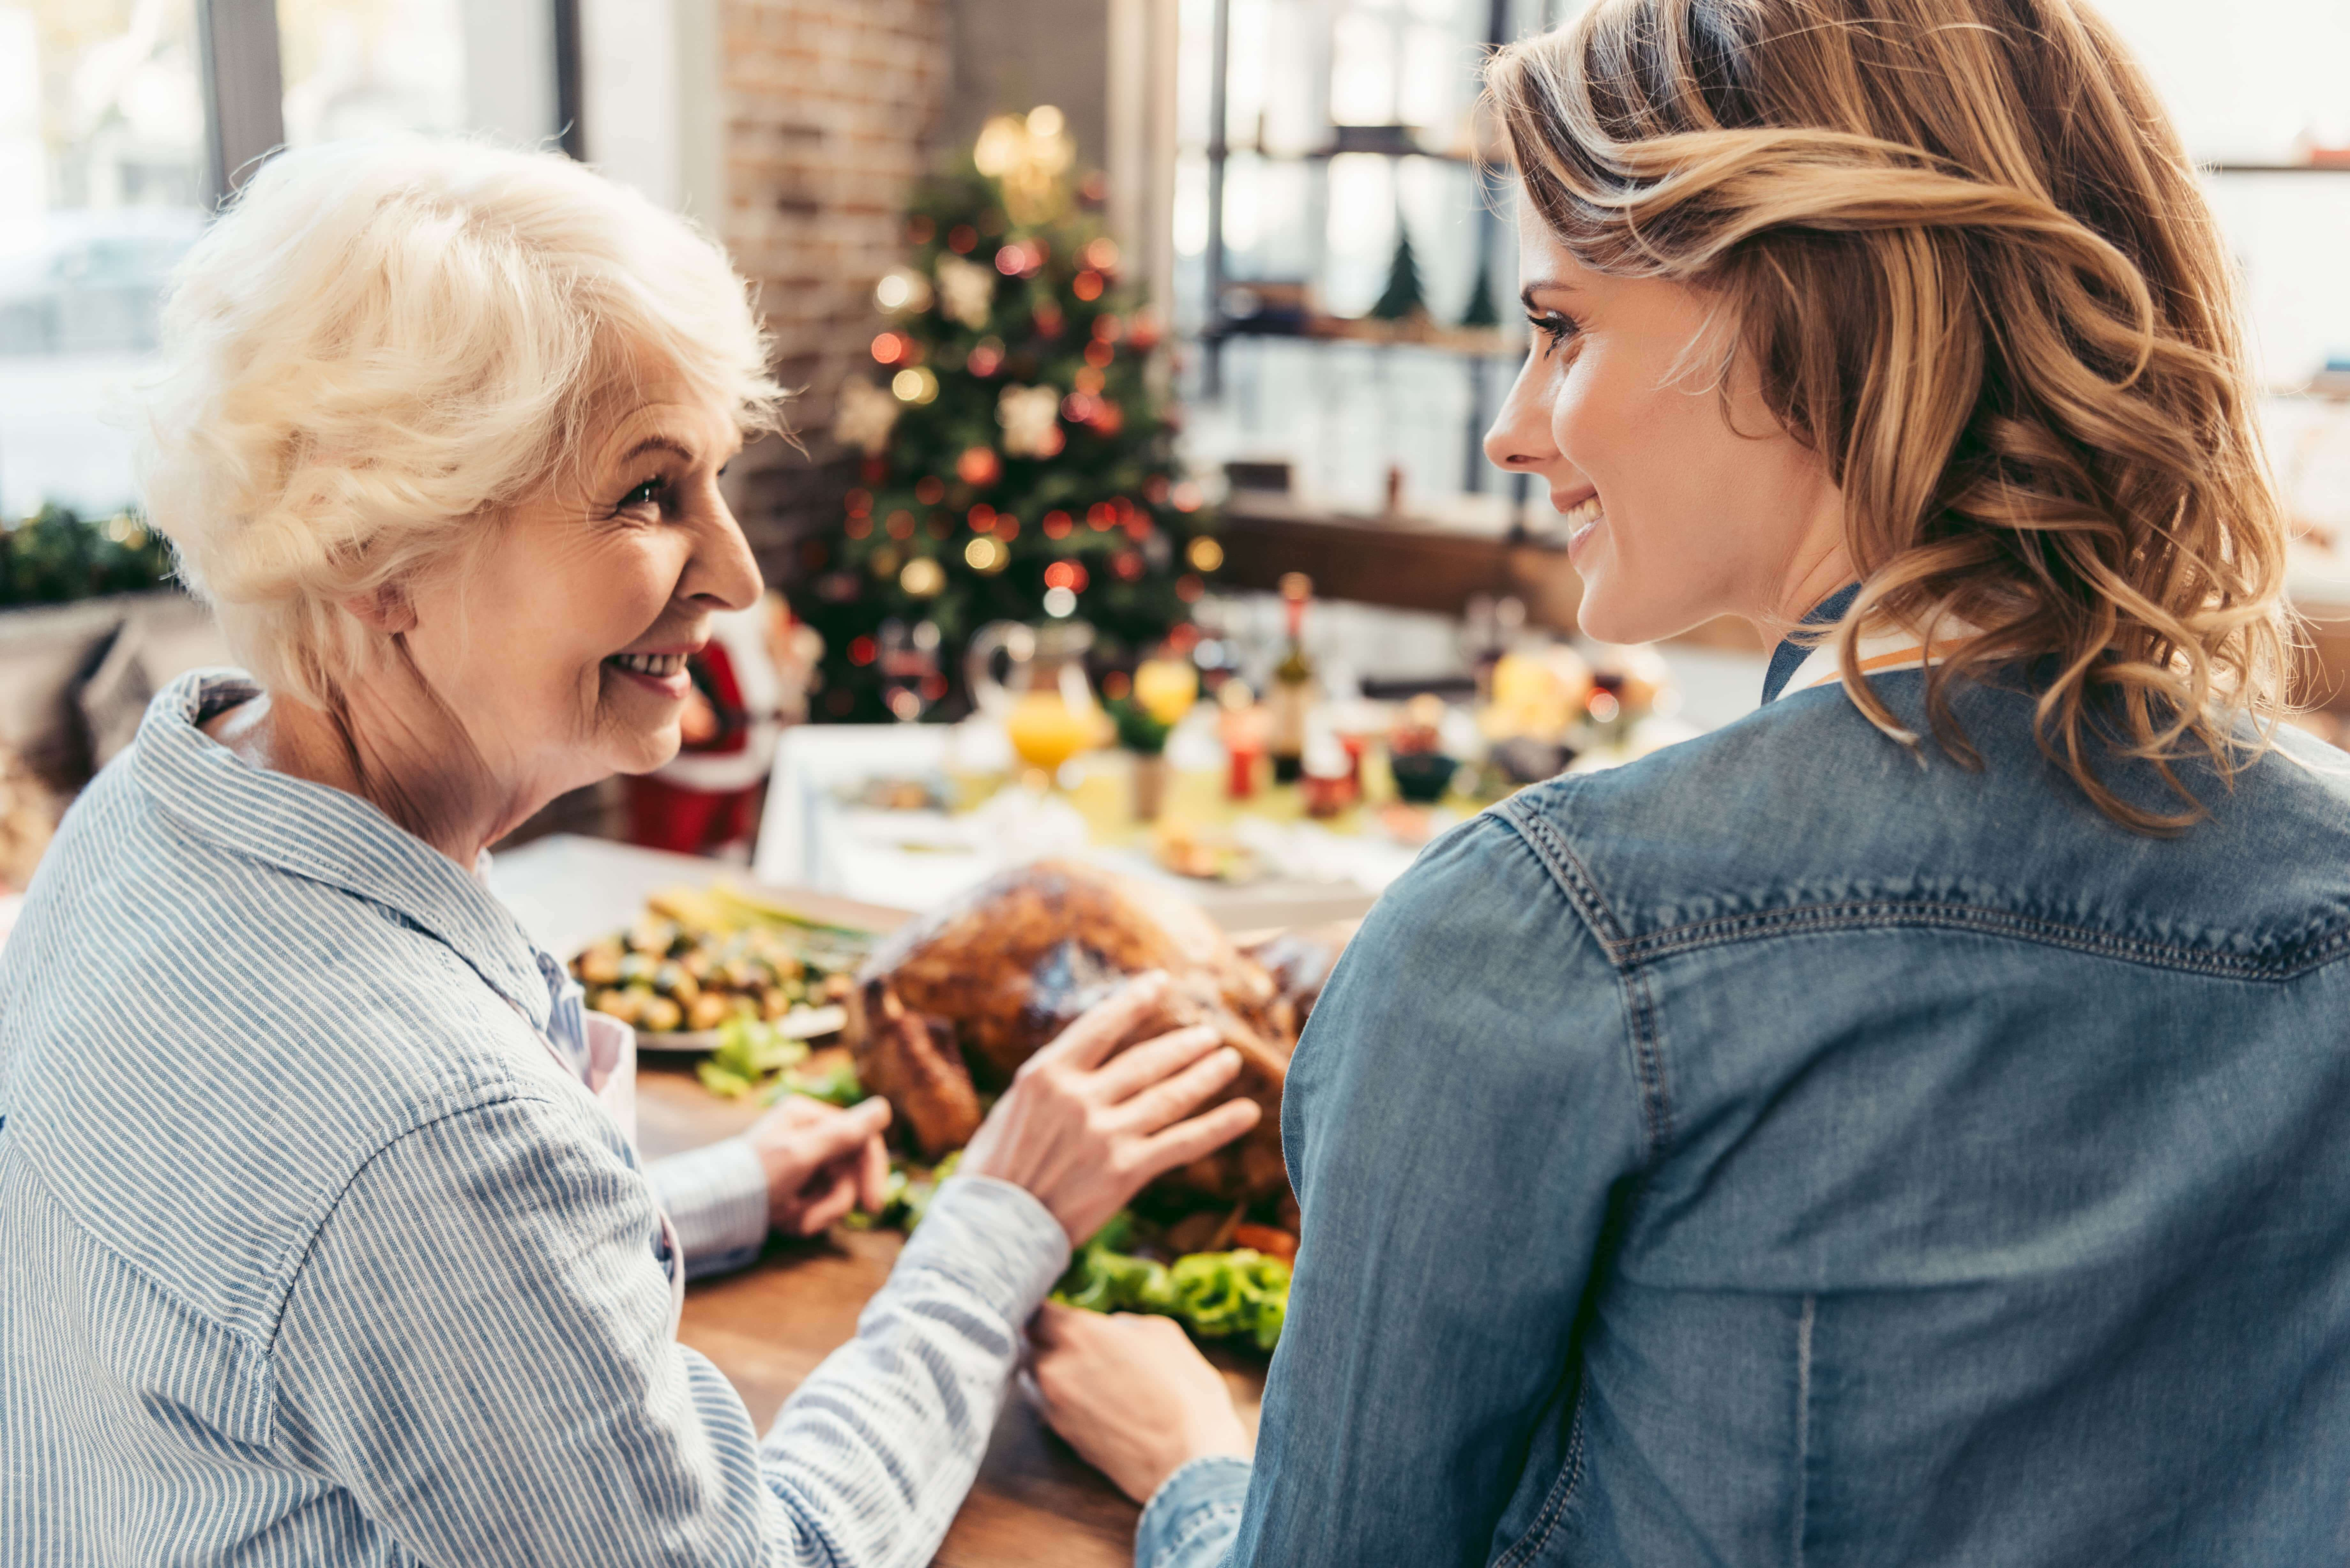 A Holiday Checklist for Adults with Aging Parents